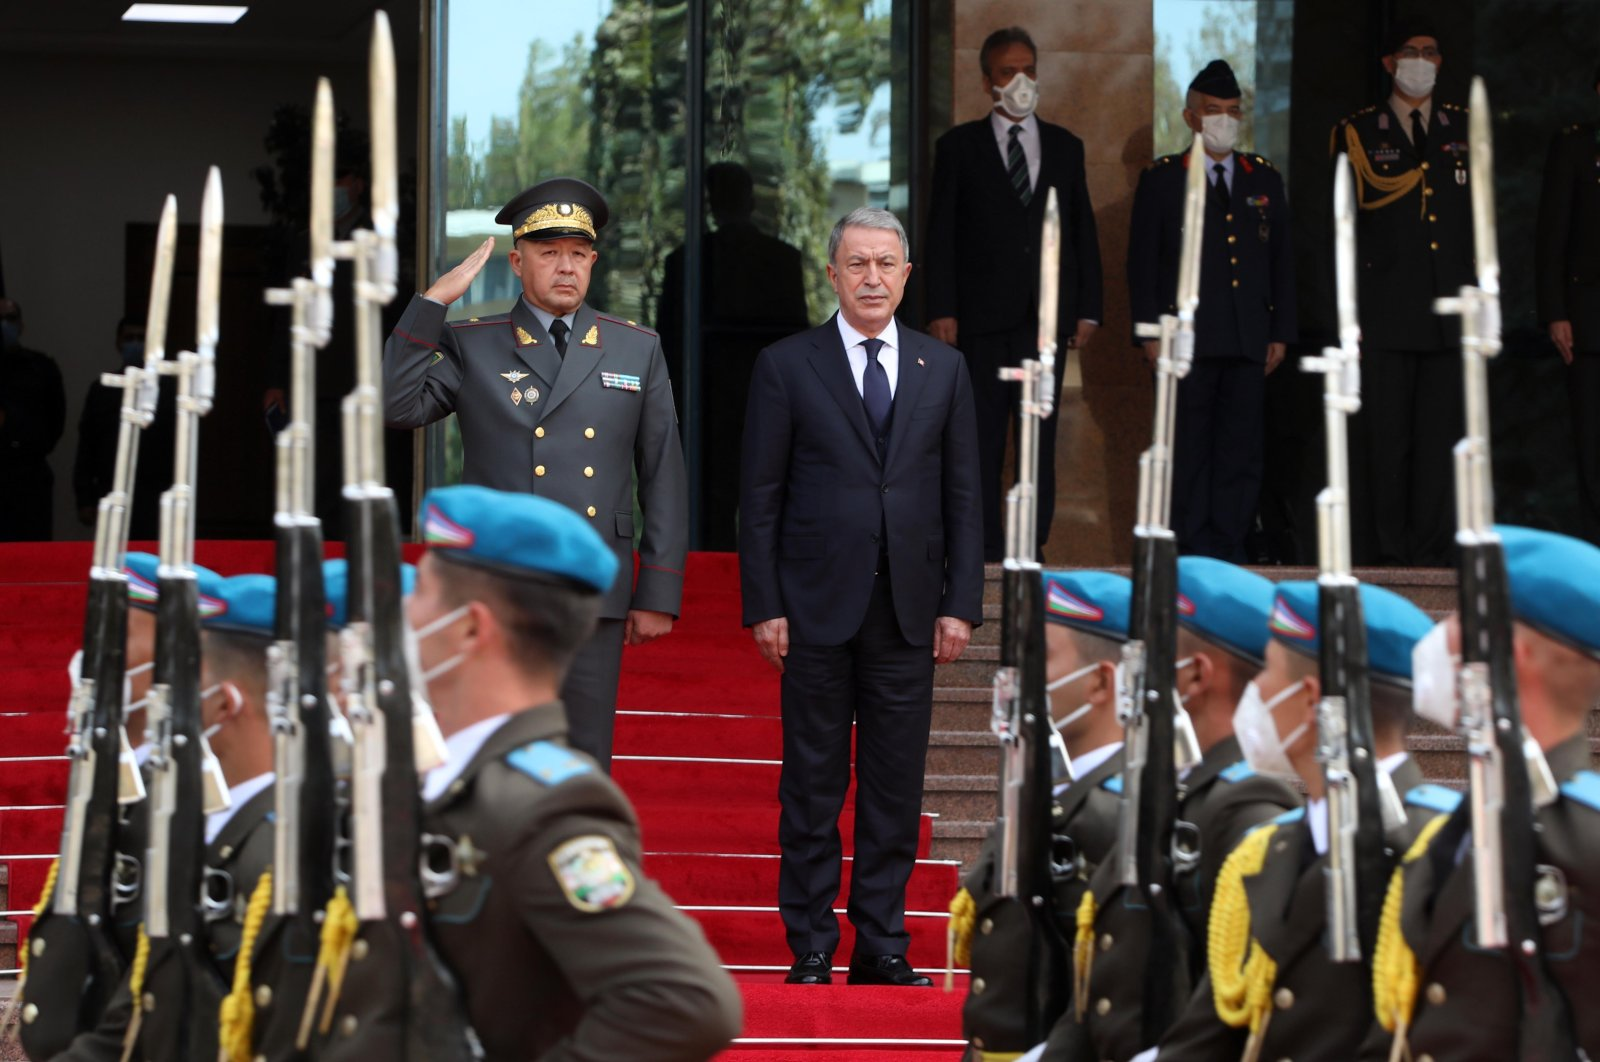 Defense Minister Hulusi Akar was welcomed with a military ceremony by his Uzbek counterpart Bakhodir Kurbanov on Oct. 27, 2020. (AA Photo)